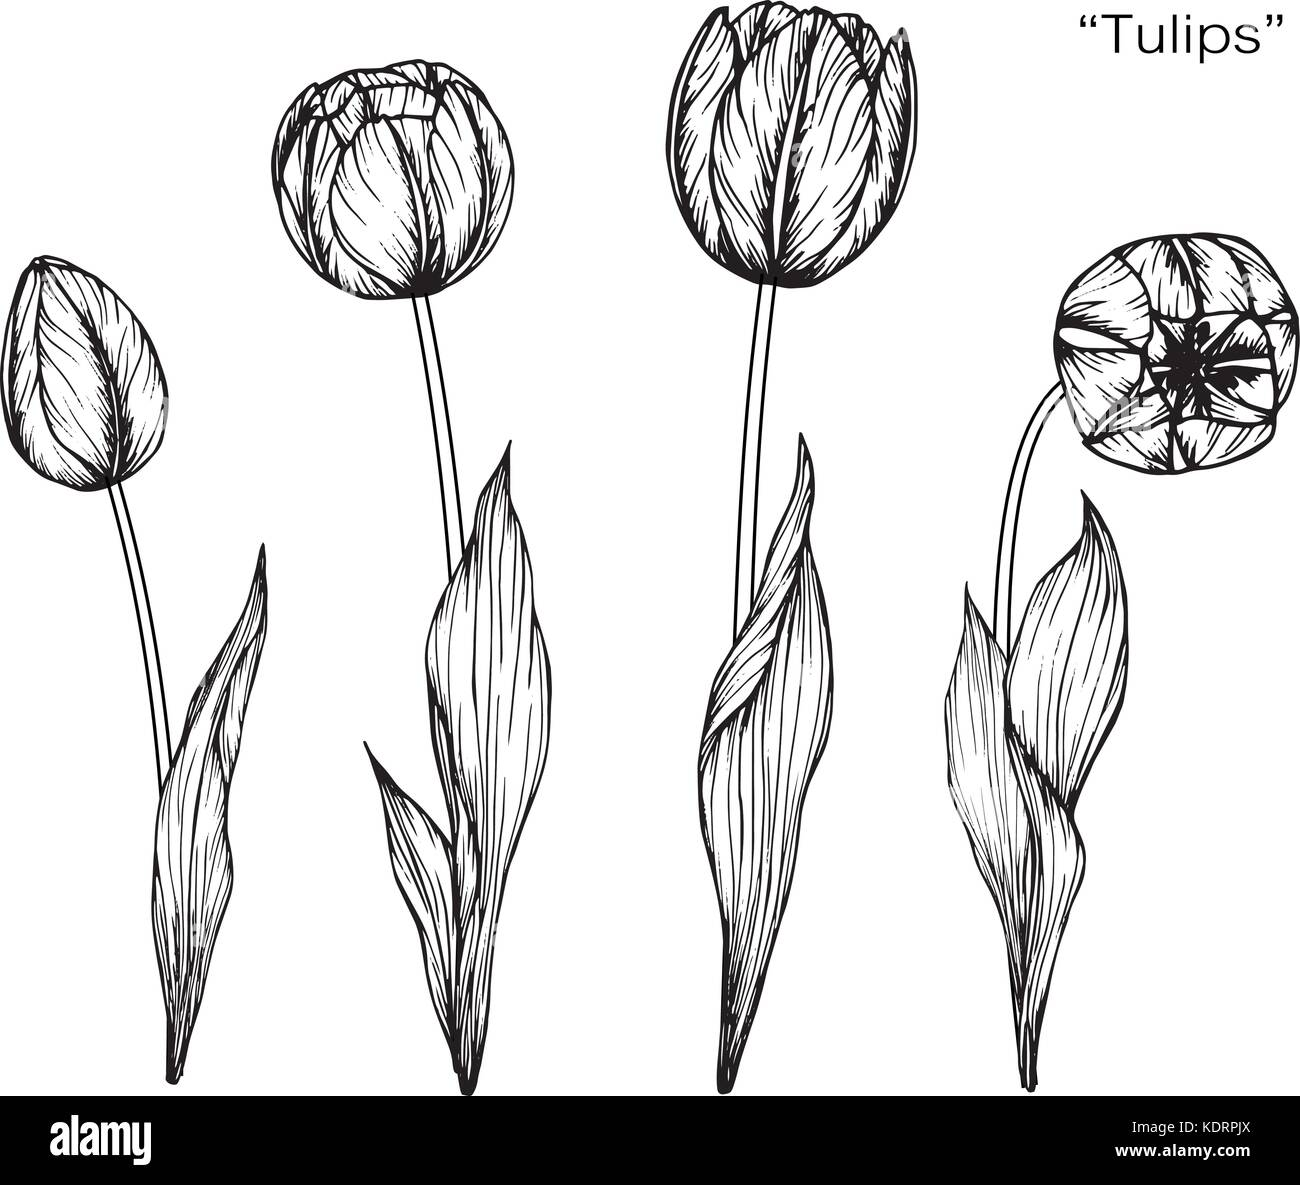 Line Drawing Of Tulip Flower : Tulip flower drawing illustration black and white with